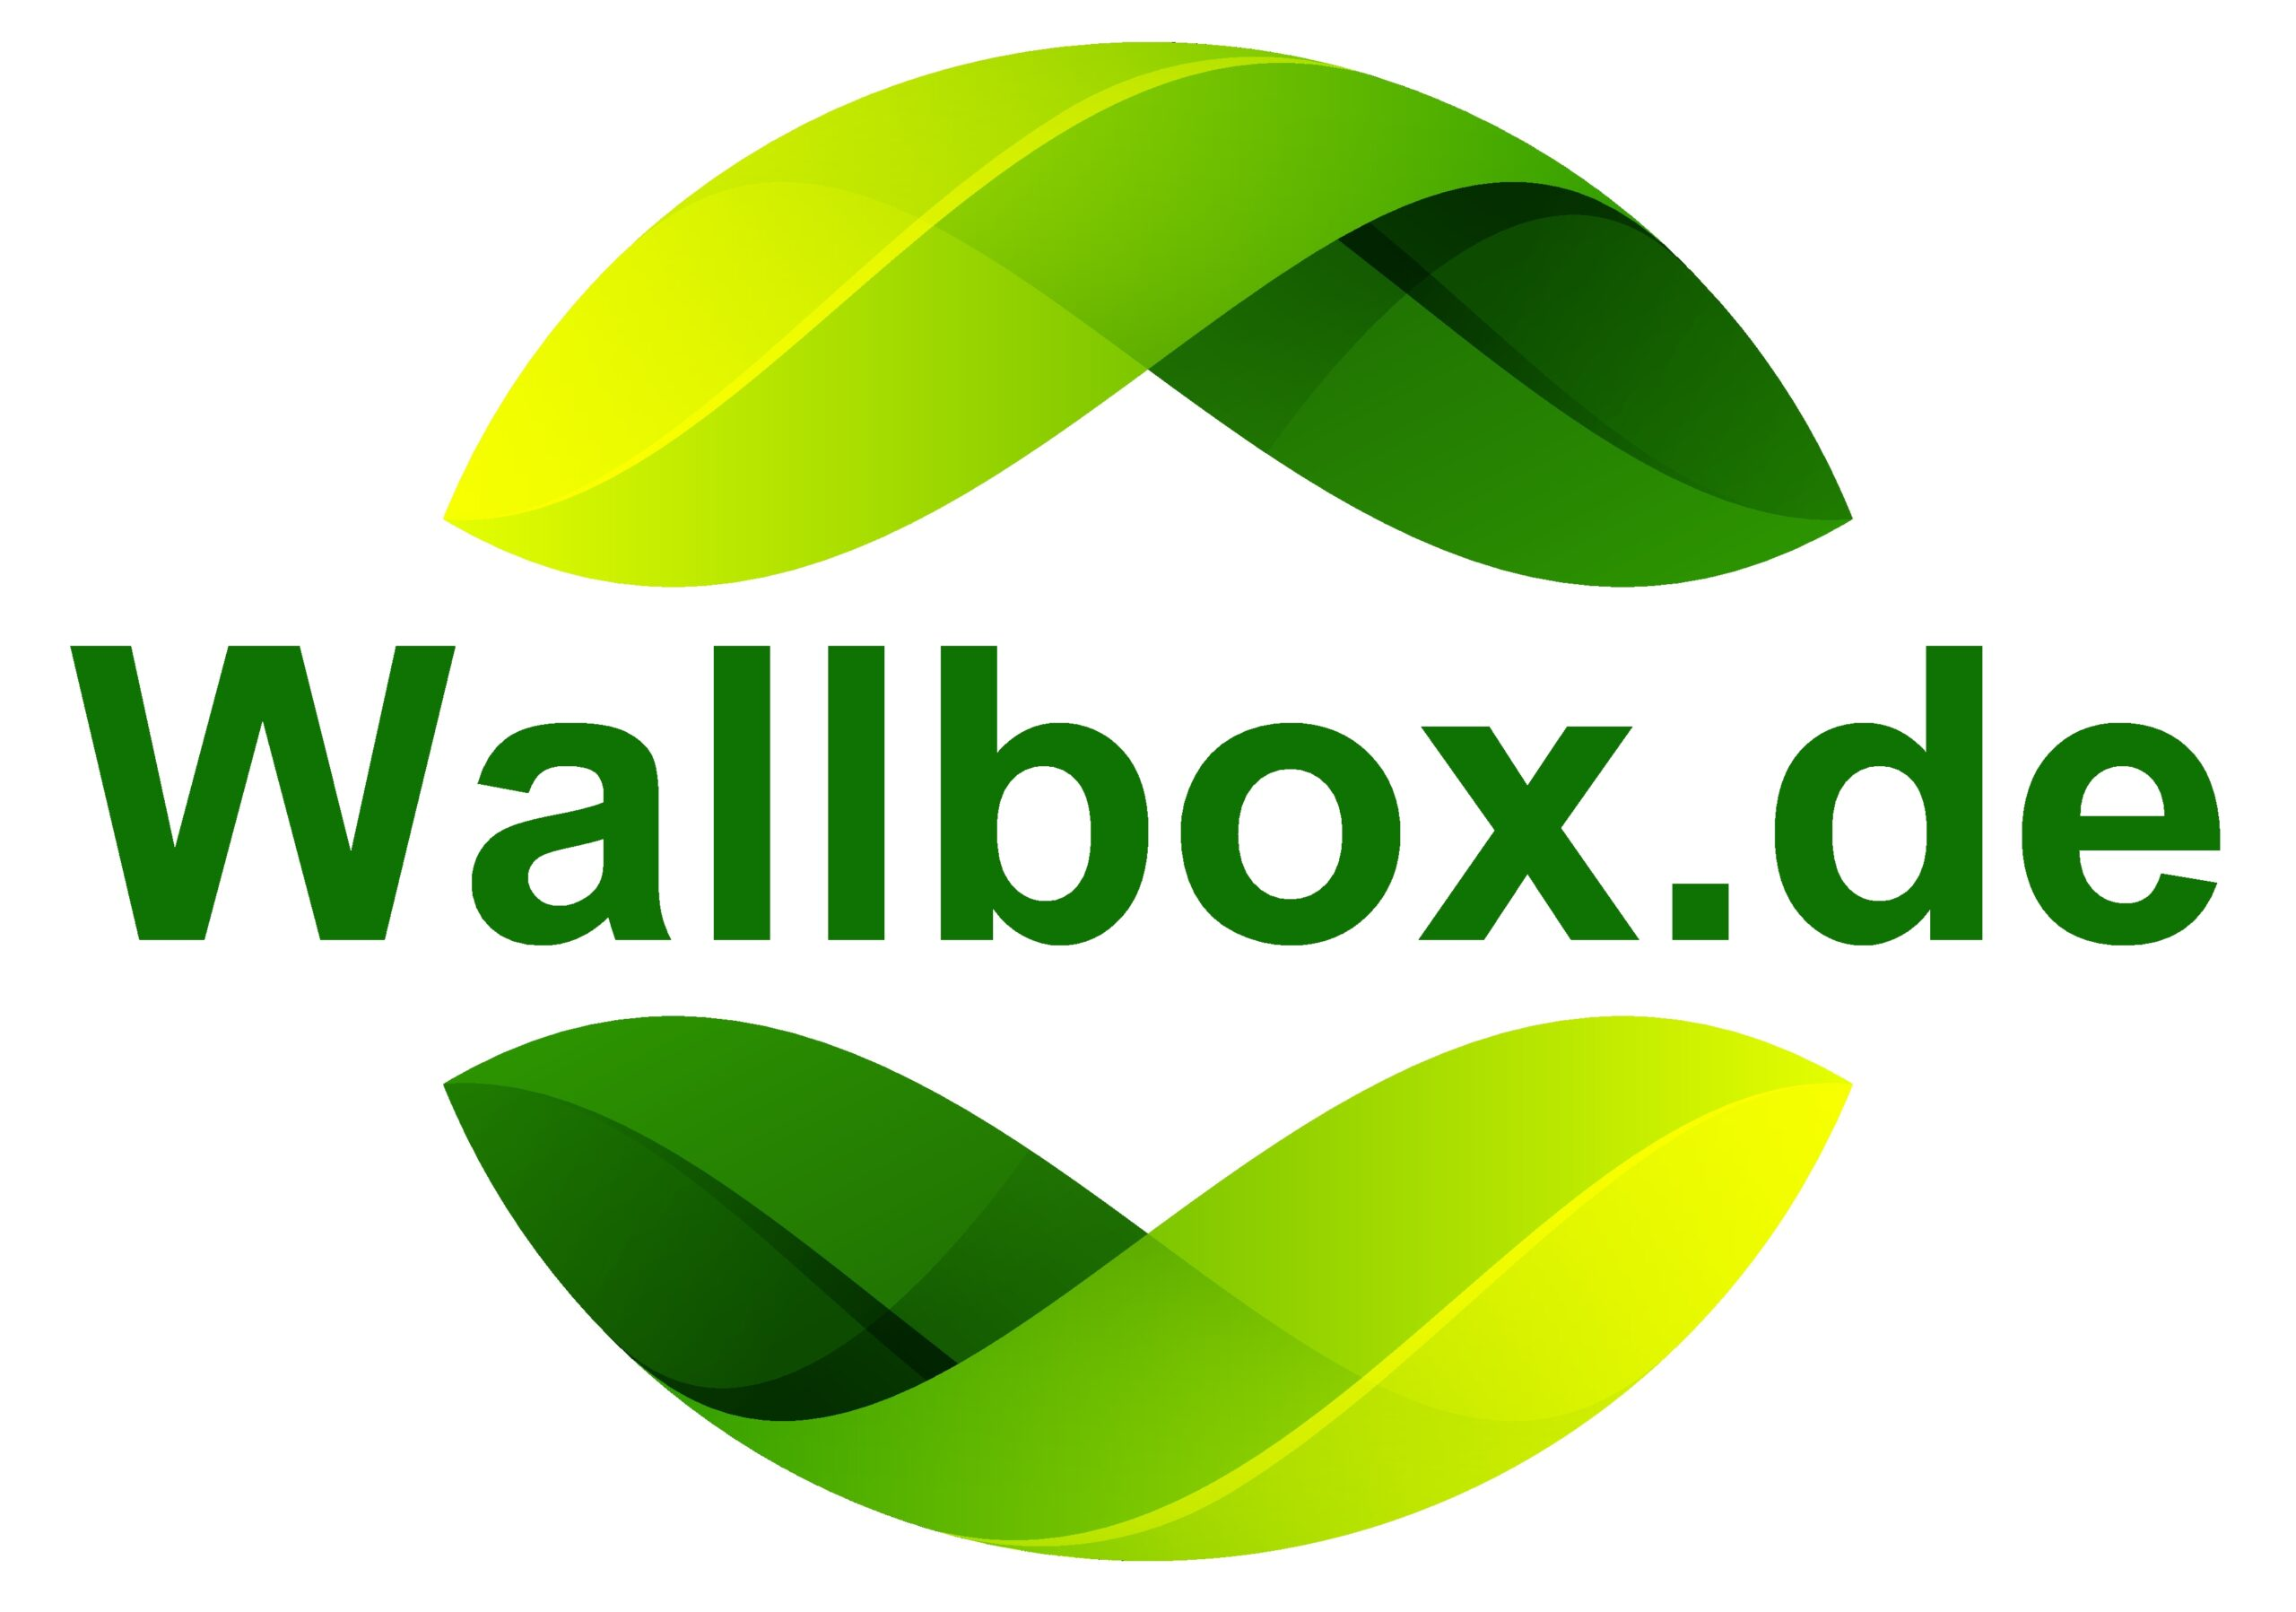 Wallbox.de